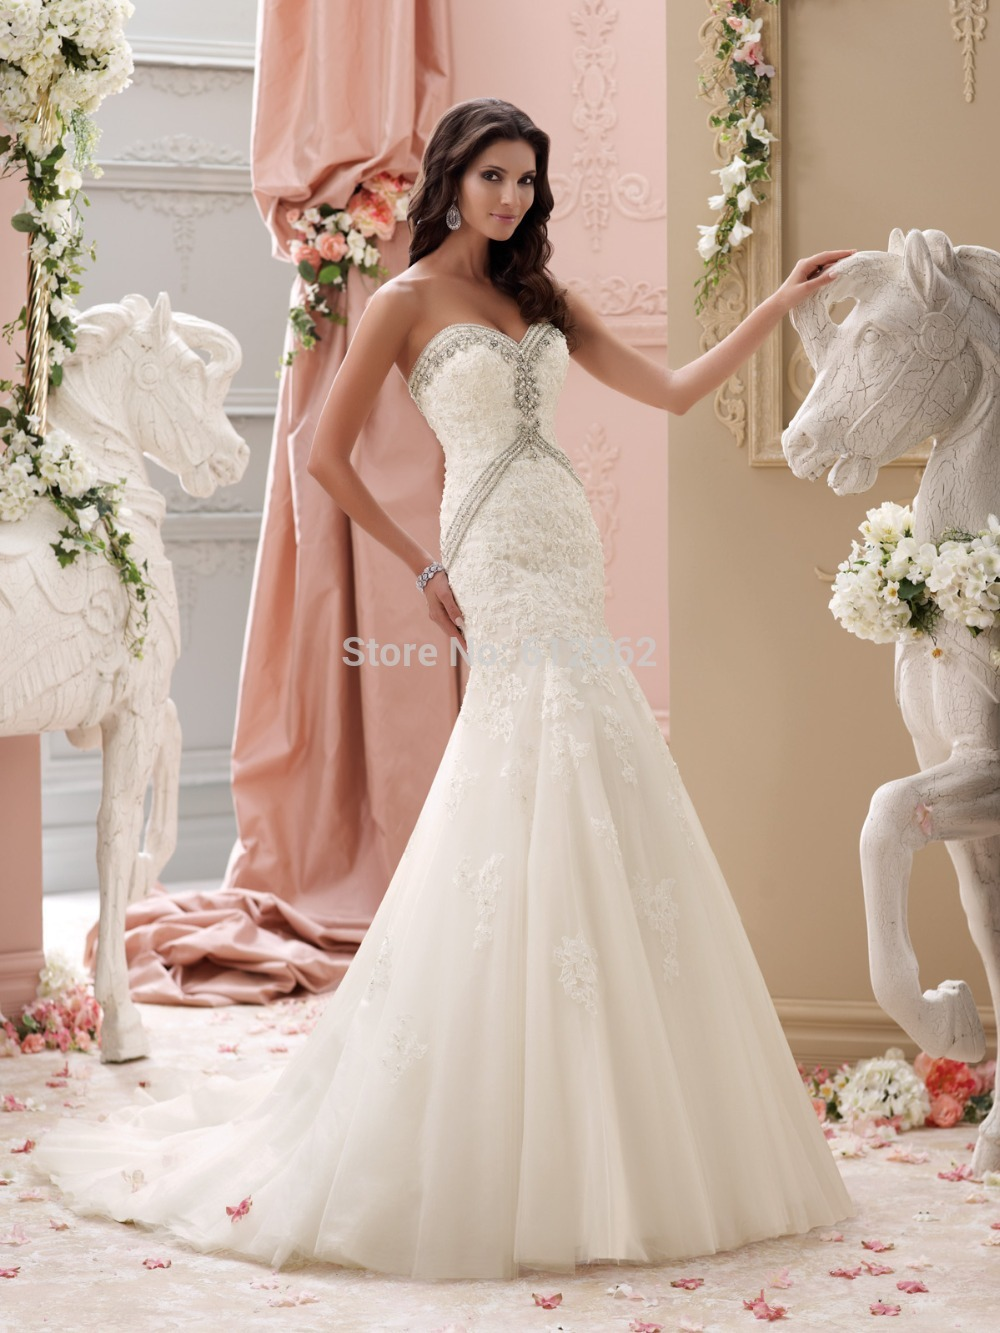 2017 strapless long train mermaid crystals corset top designer 2017 strapless long train mermaid crystals corset top designer wedding gowns in wedding dresses from weddings events on aliexpress alibaba group ombrellifo Choice Image